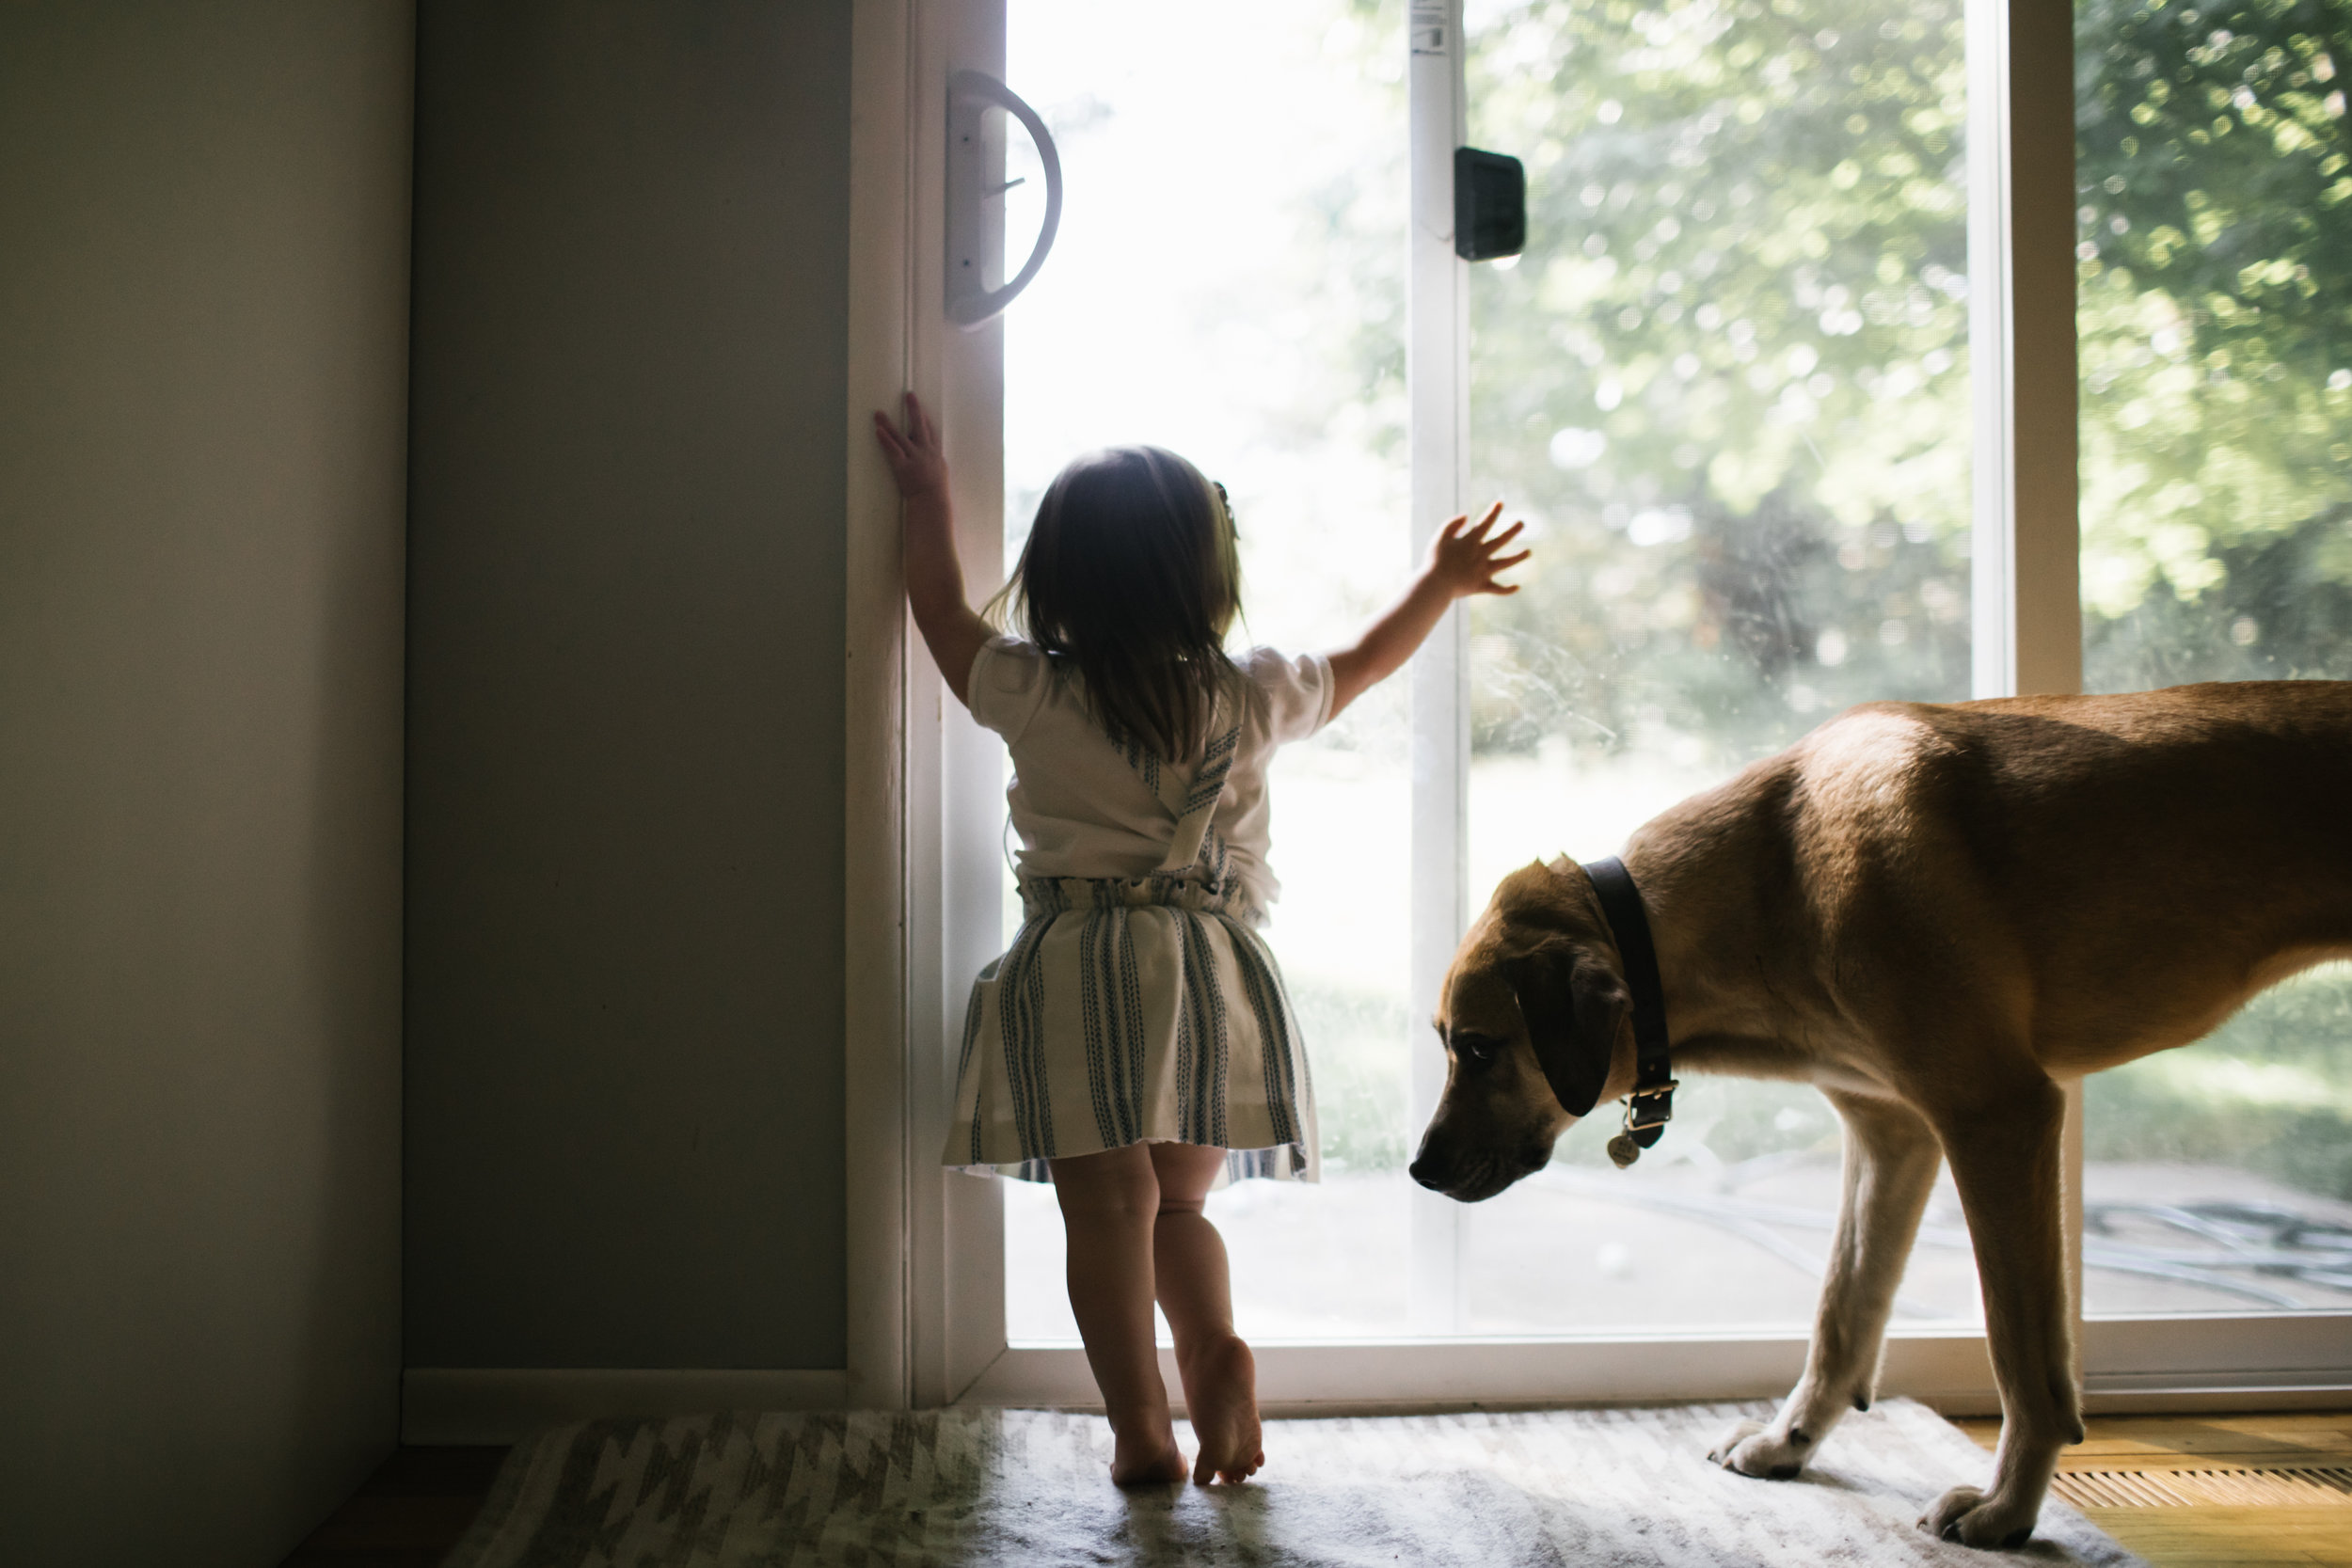 Toddler girl looking out window with dog